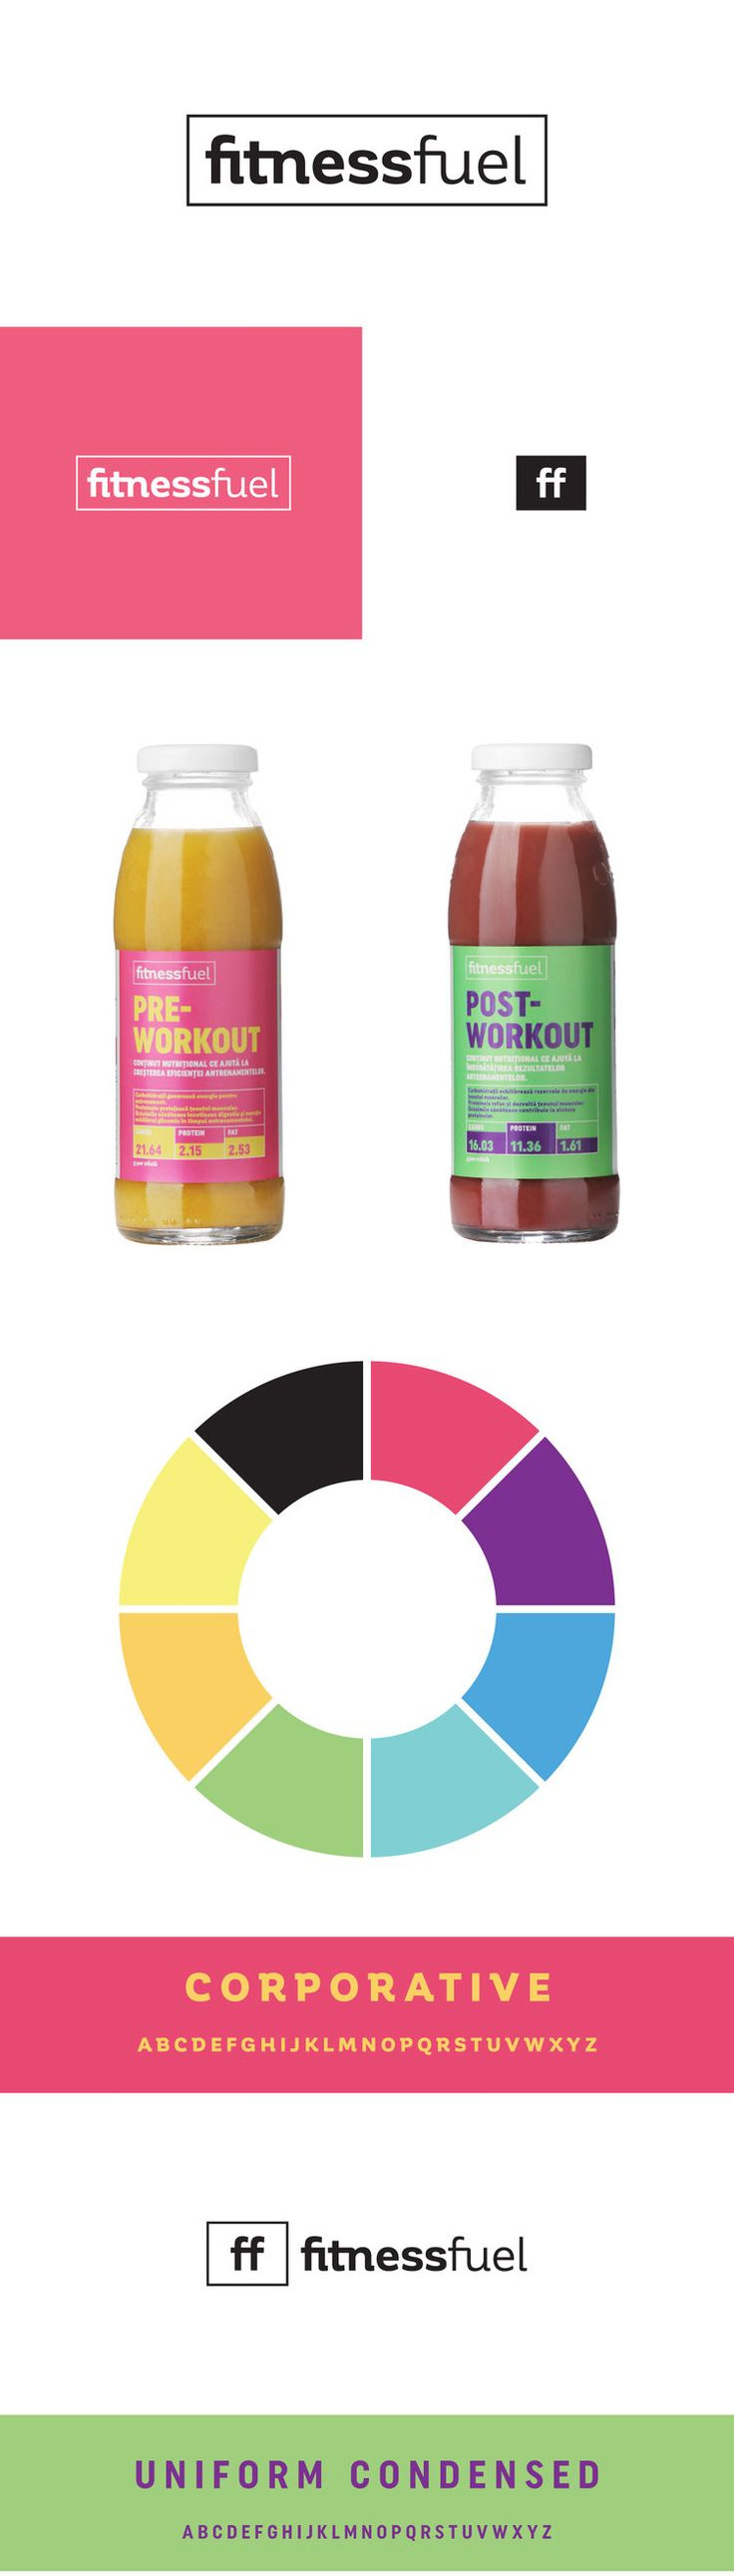 Packaging design for Romanian brand, FitnessFuel